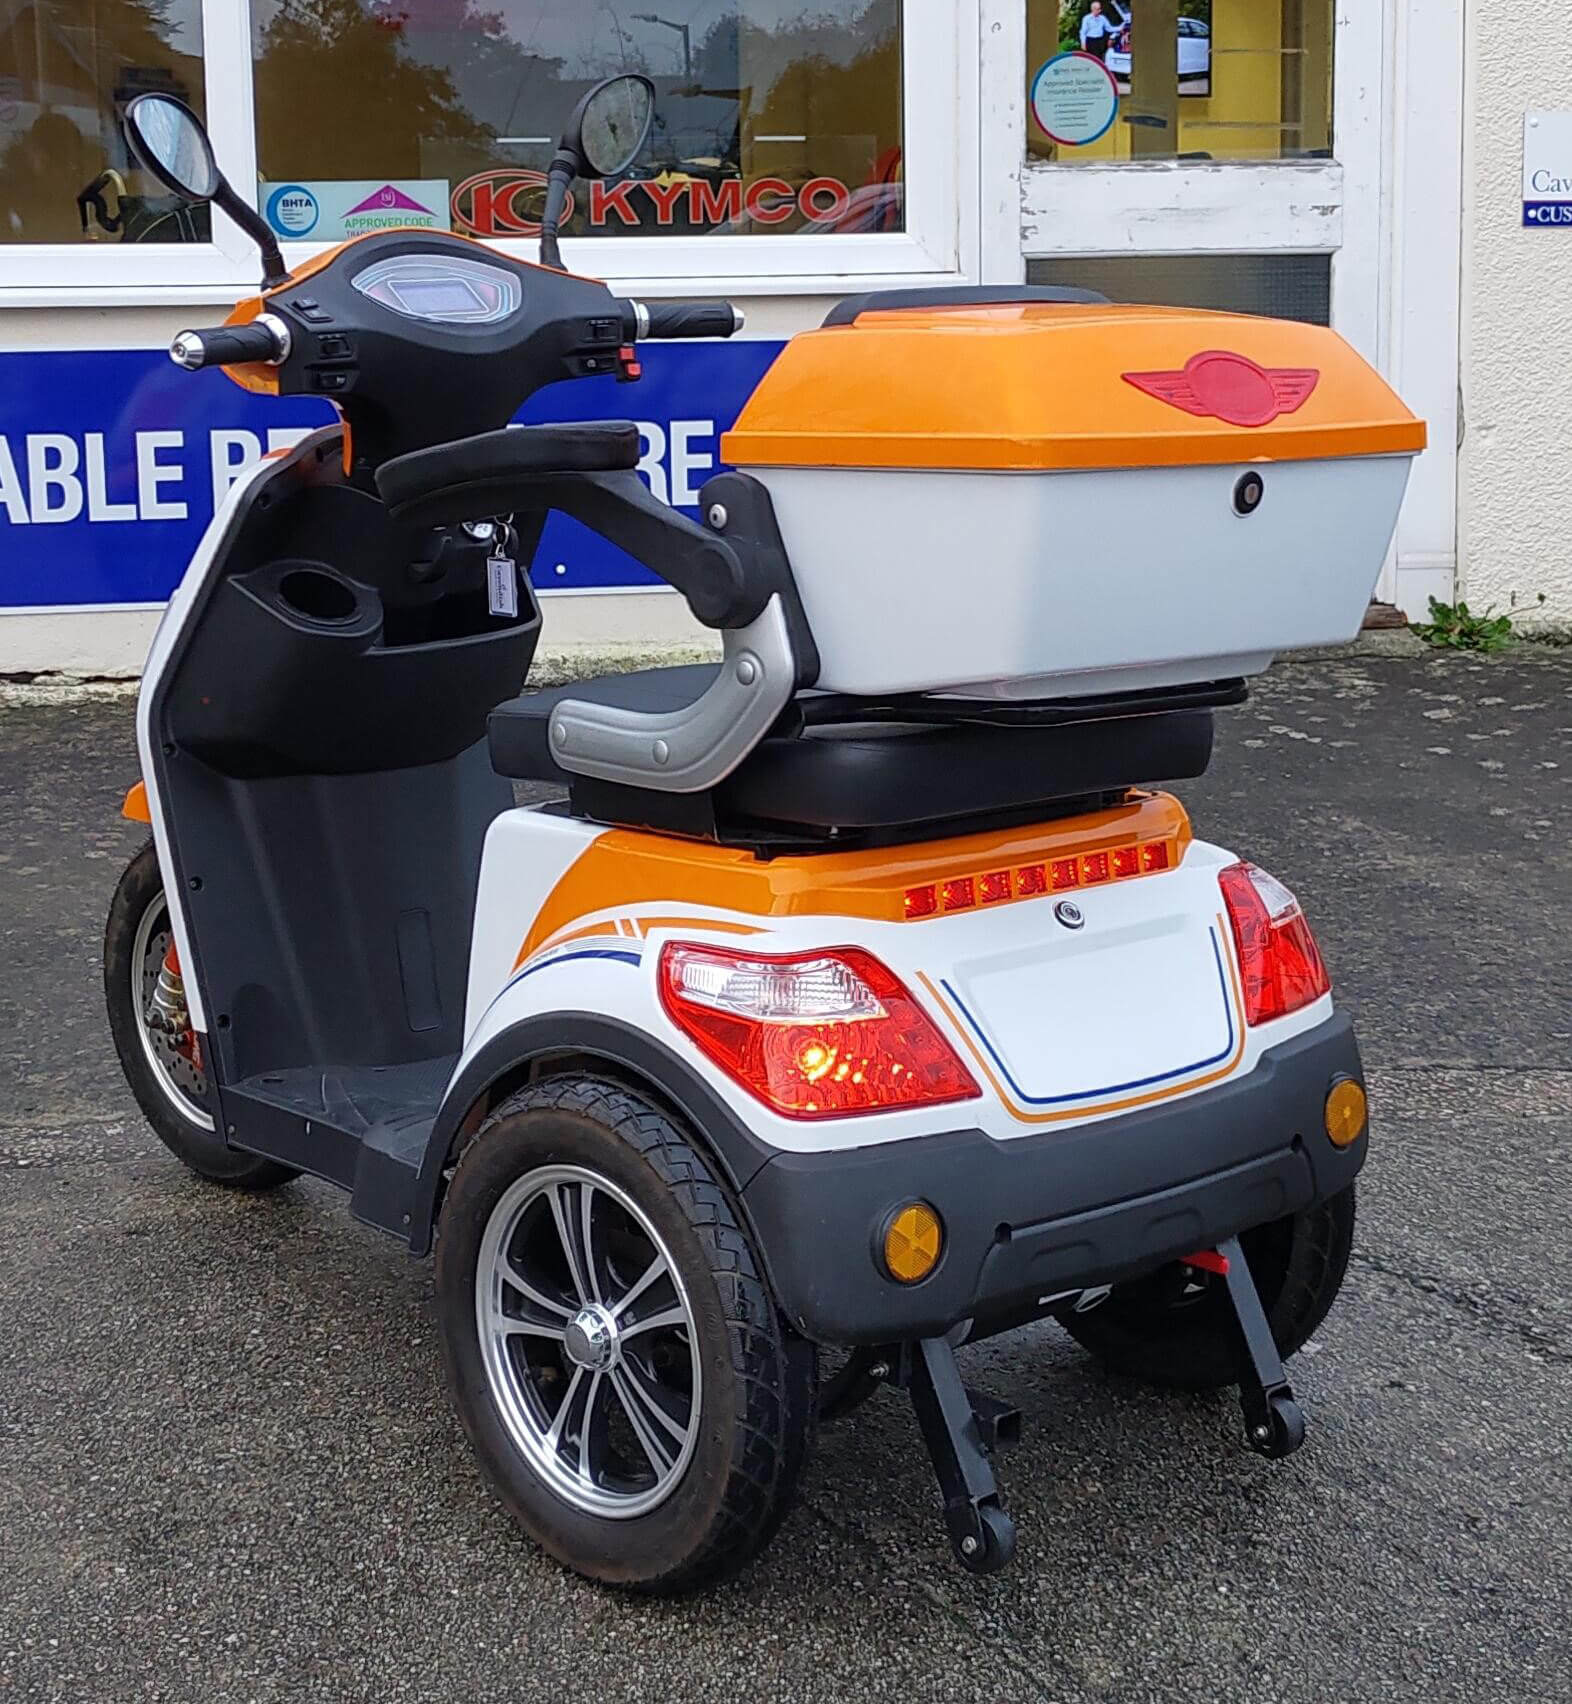 MBO Motorbike Scooter (Back)